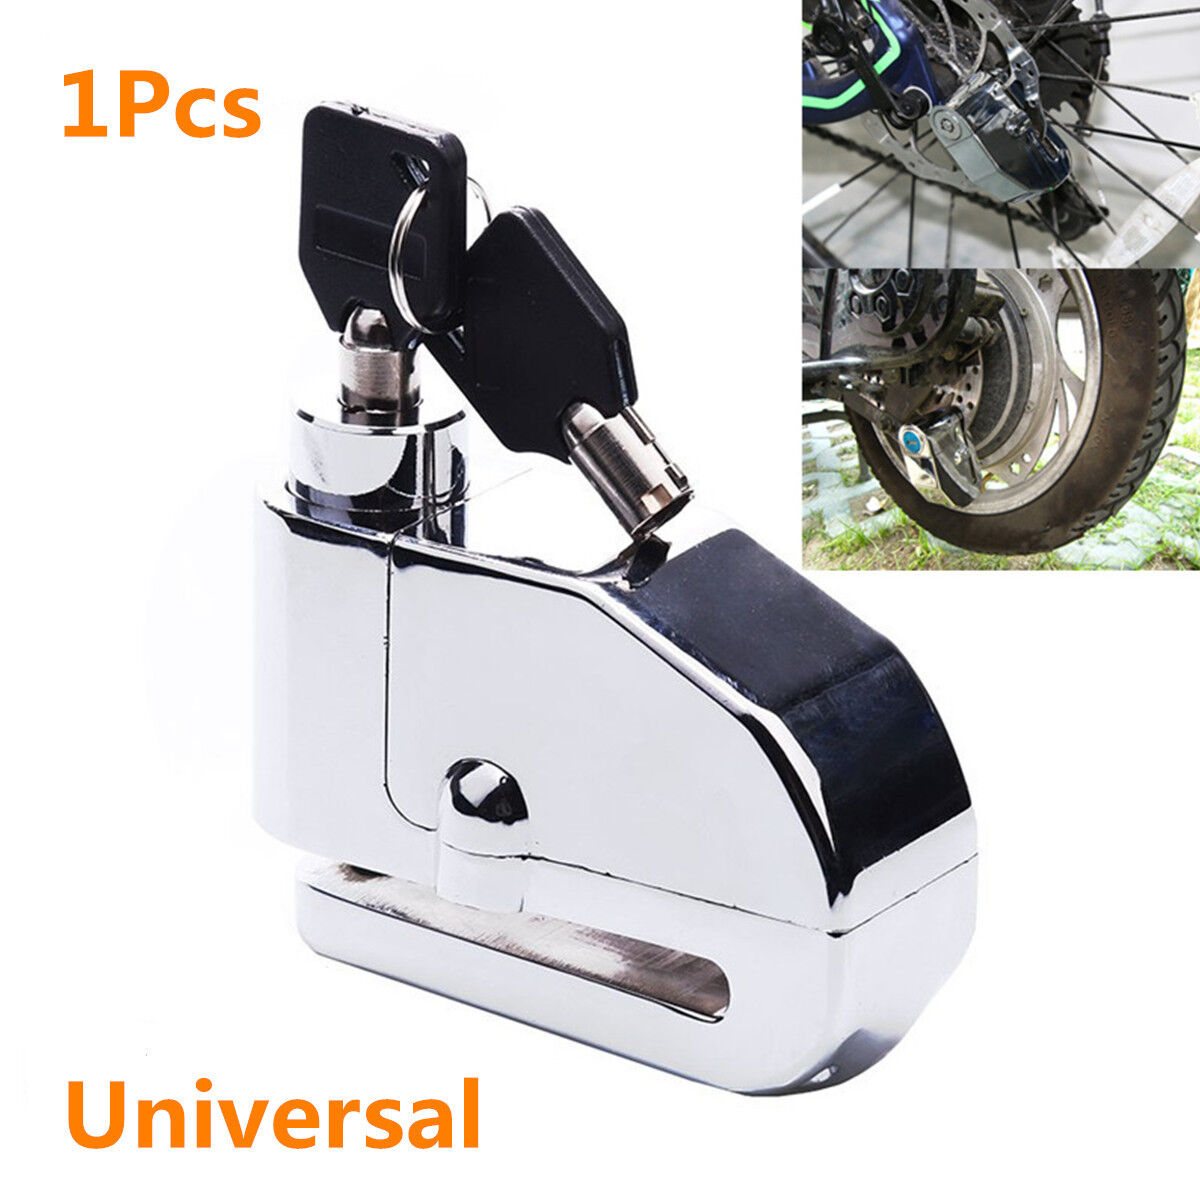 Anti-theft Wheel Disc Brake Lock Security Alarm Motorcycle Bicycle Scooter A1I2